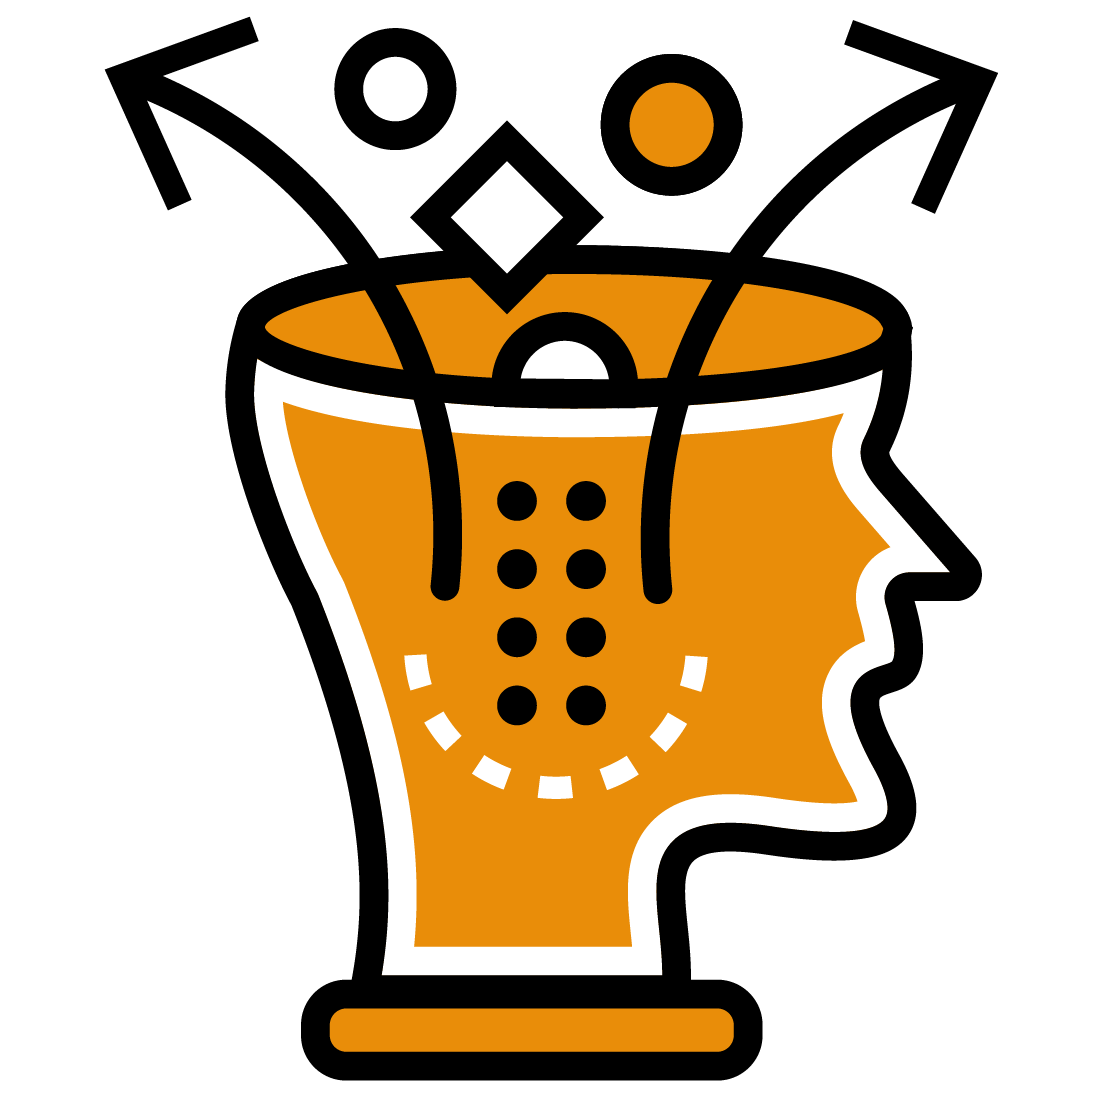 Head with cubes and spheres representing the thinking process of scientists in machine learning data collection